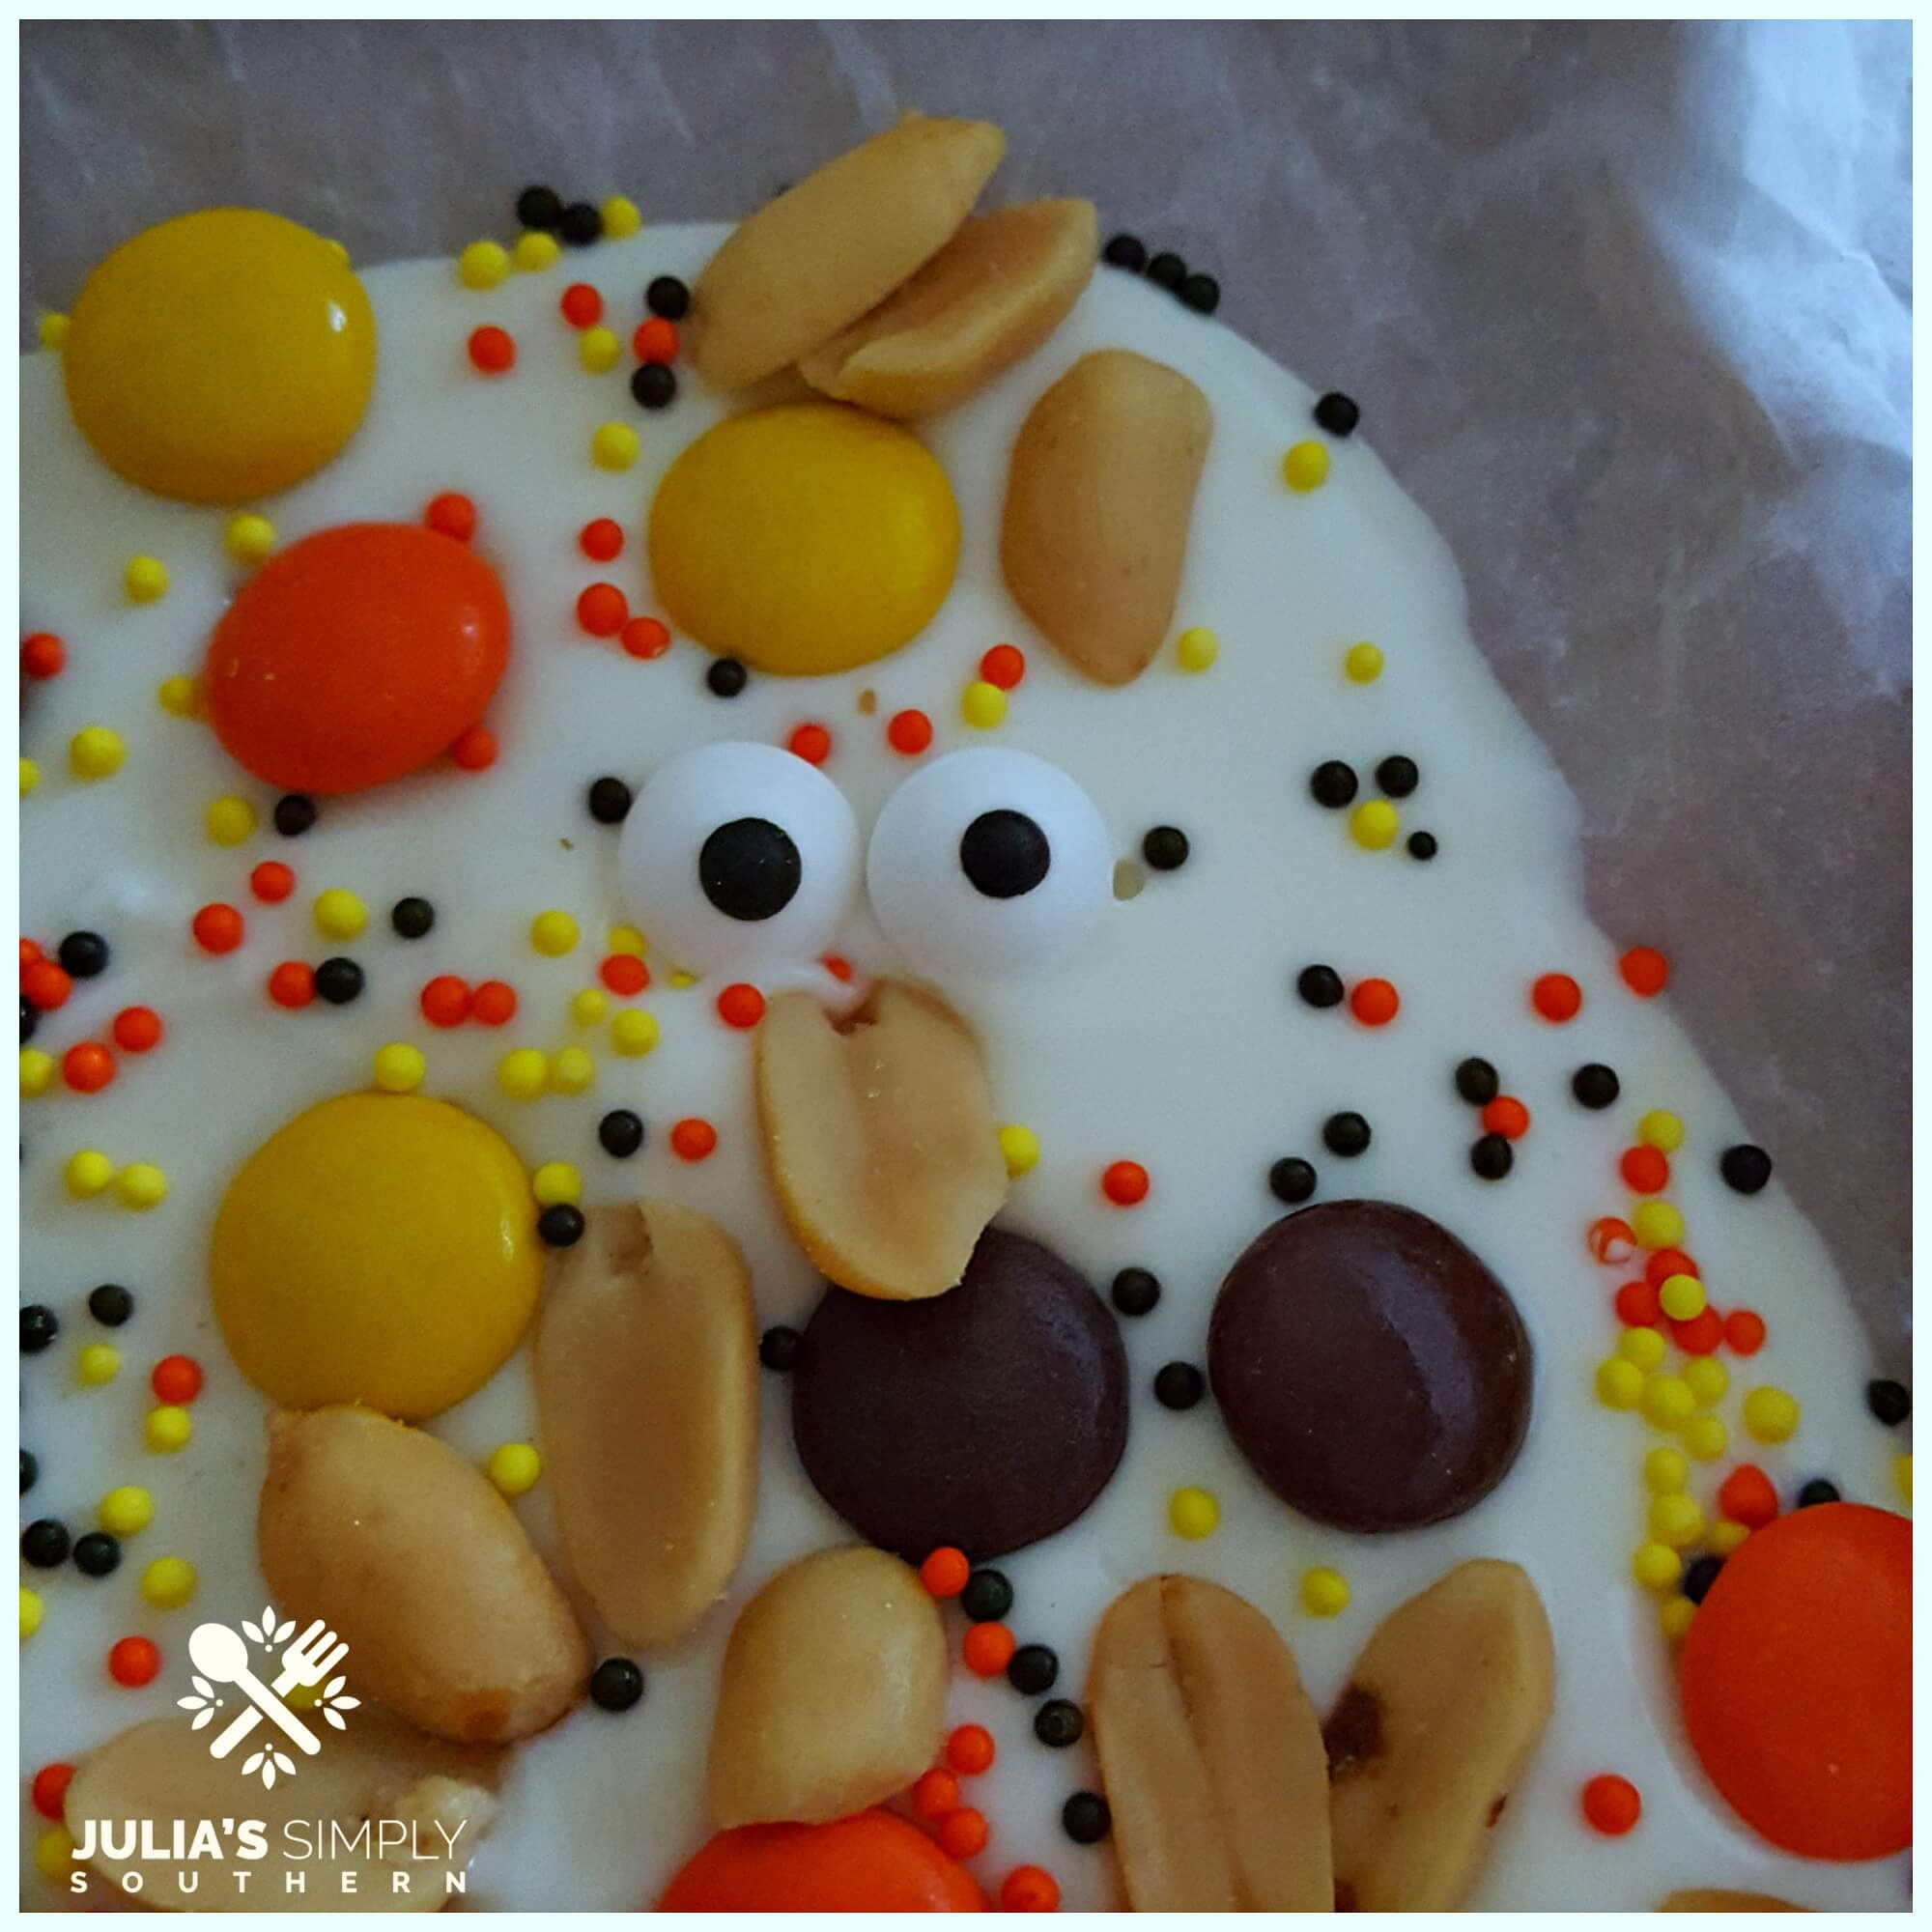 Chocolate bark for Halloween - Julia's Simply Southern